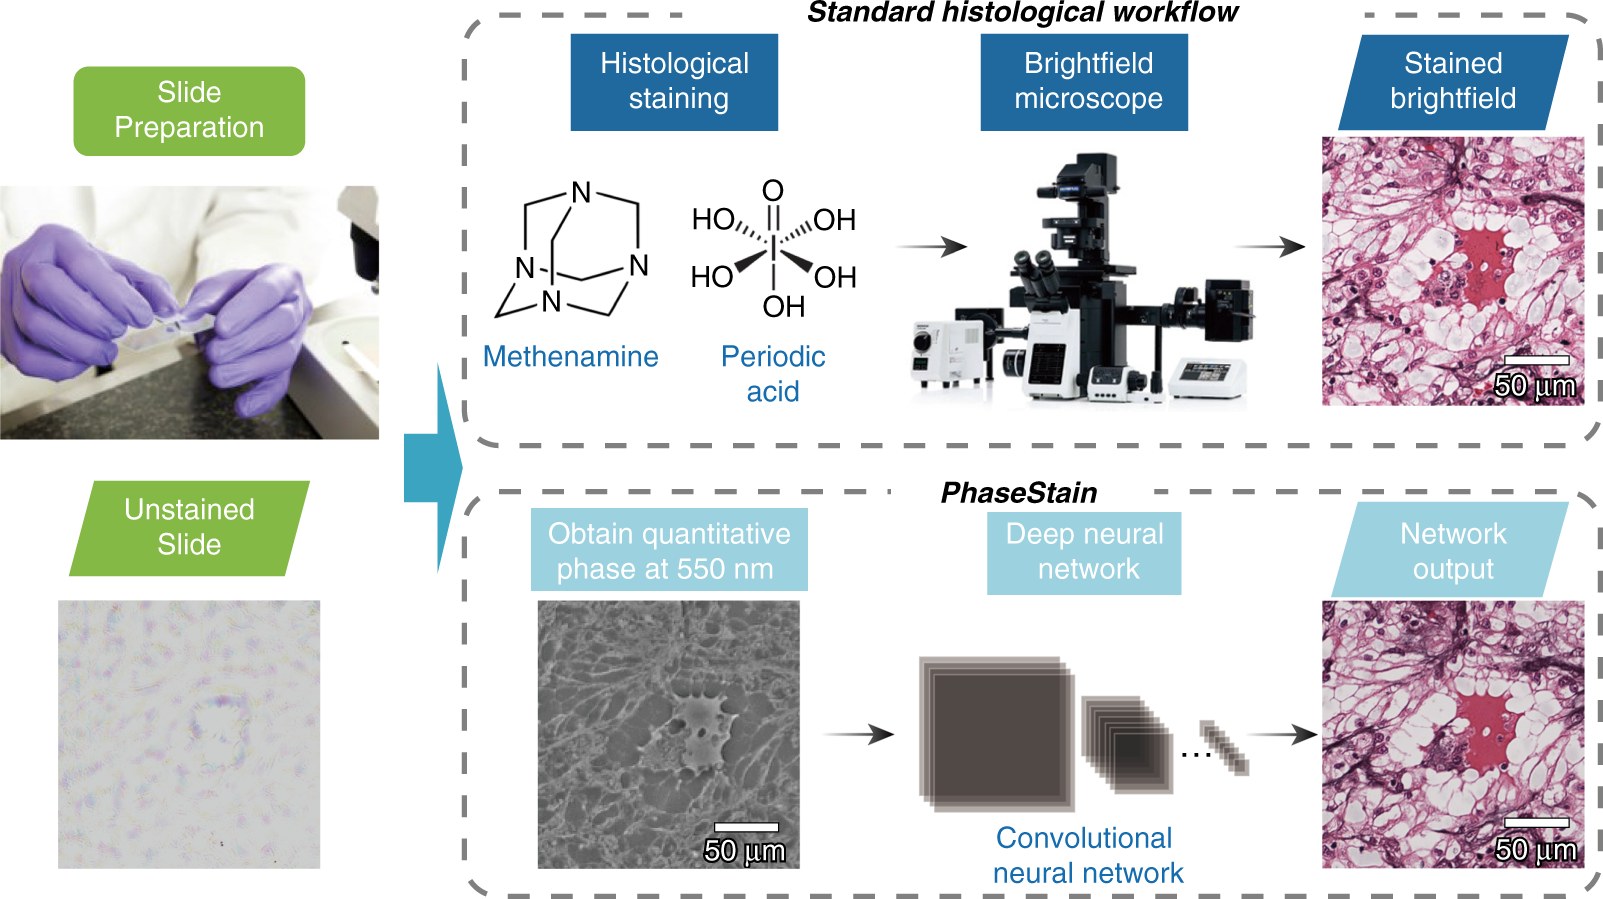 PhaseStain: the digital staining of label-free quantitative phase